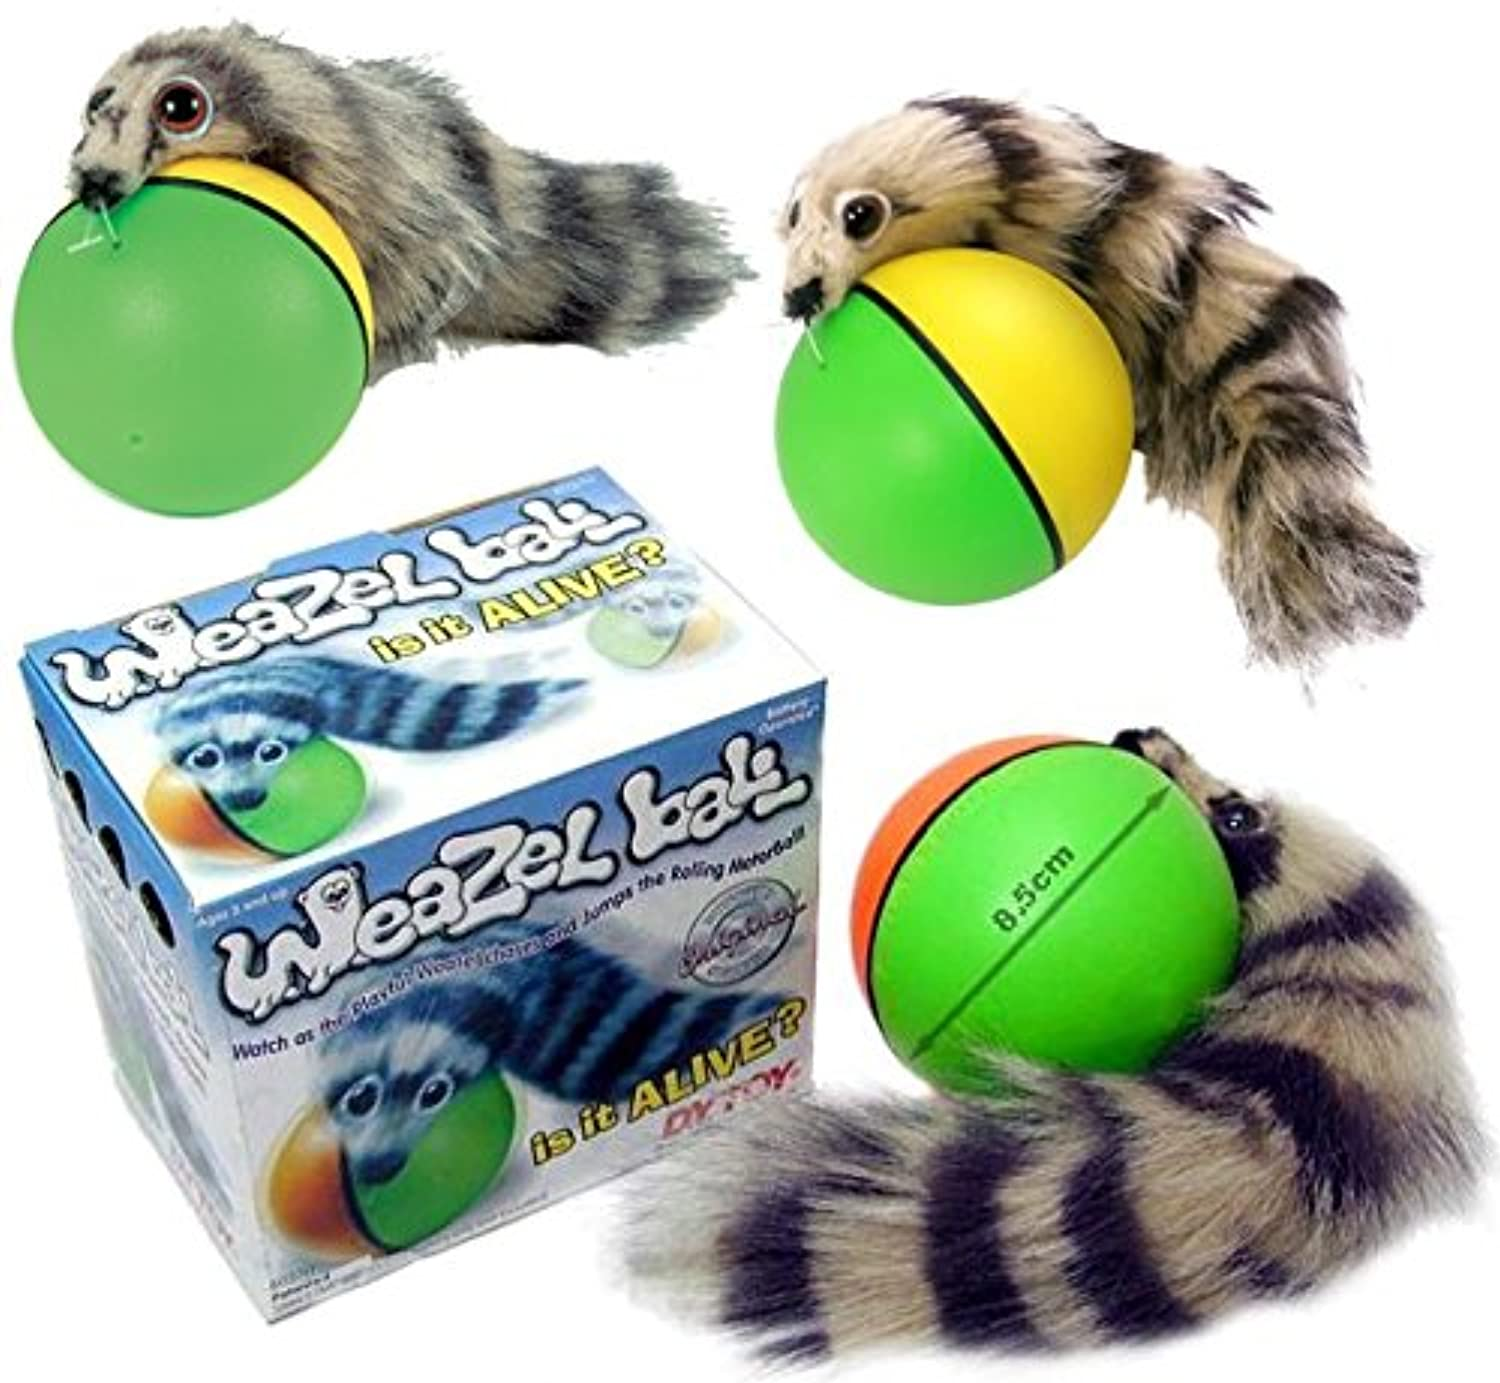 [D.Y. Toy]D.Y. Toy Weazel Ball 3 Pack Battery Operated Toy for Kids, Adults, Dogs or Cats by 8037HH [並行輸入品]